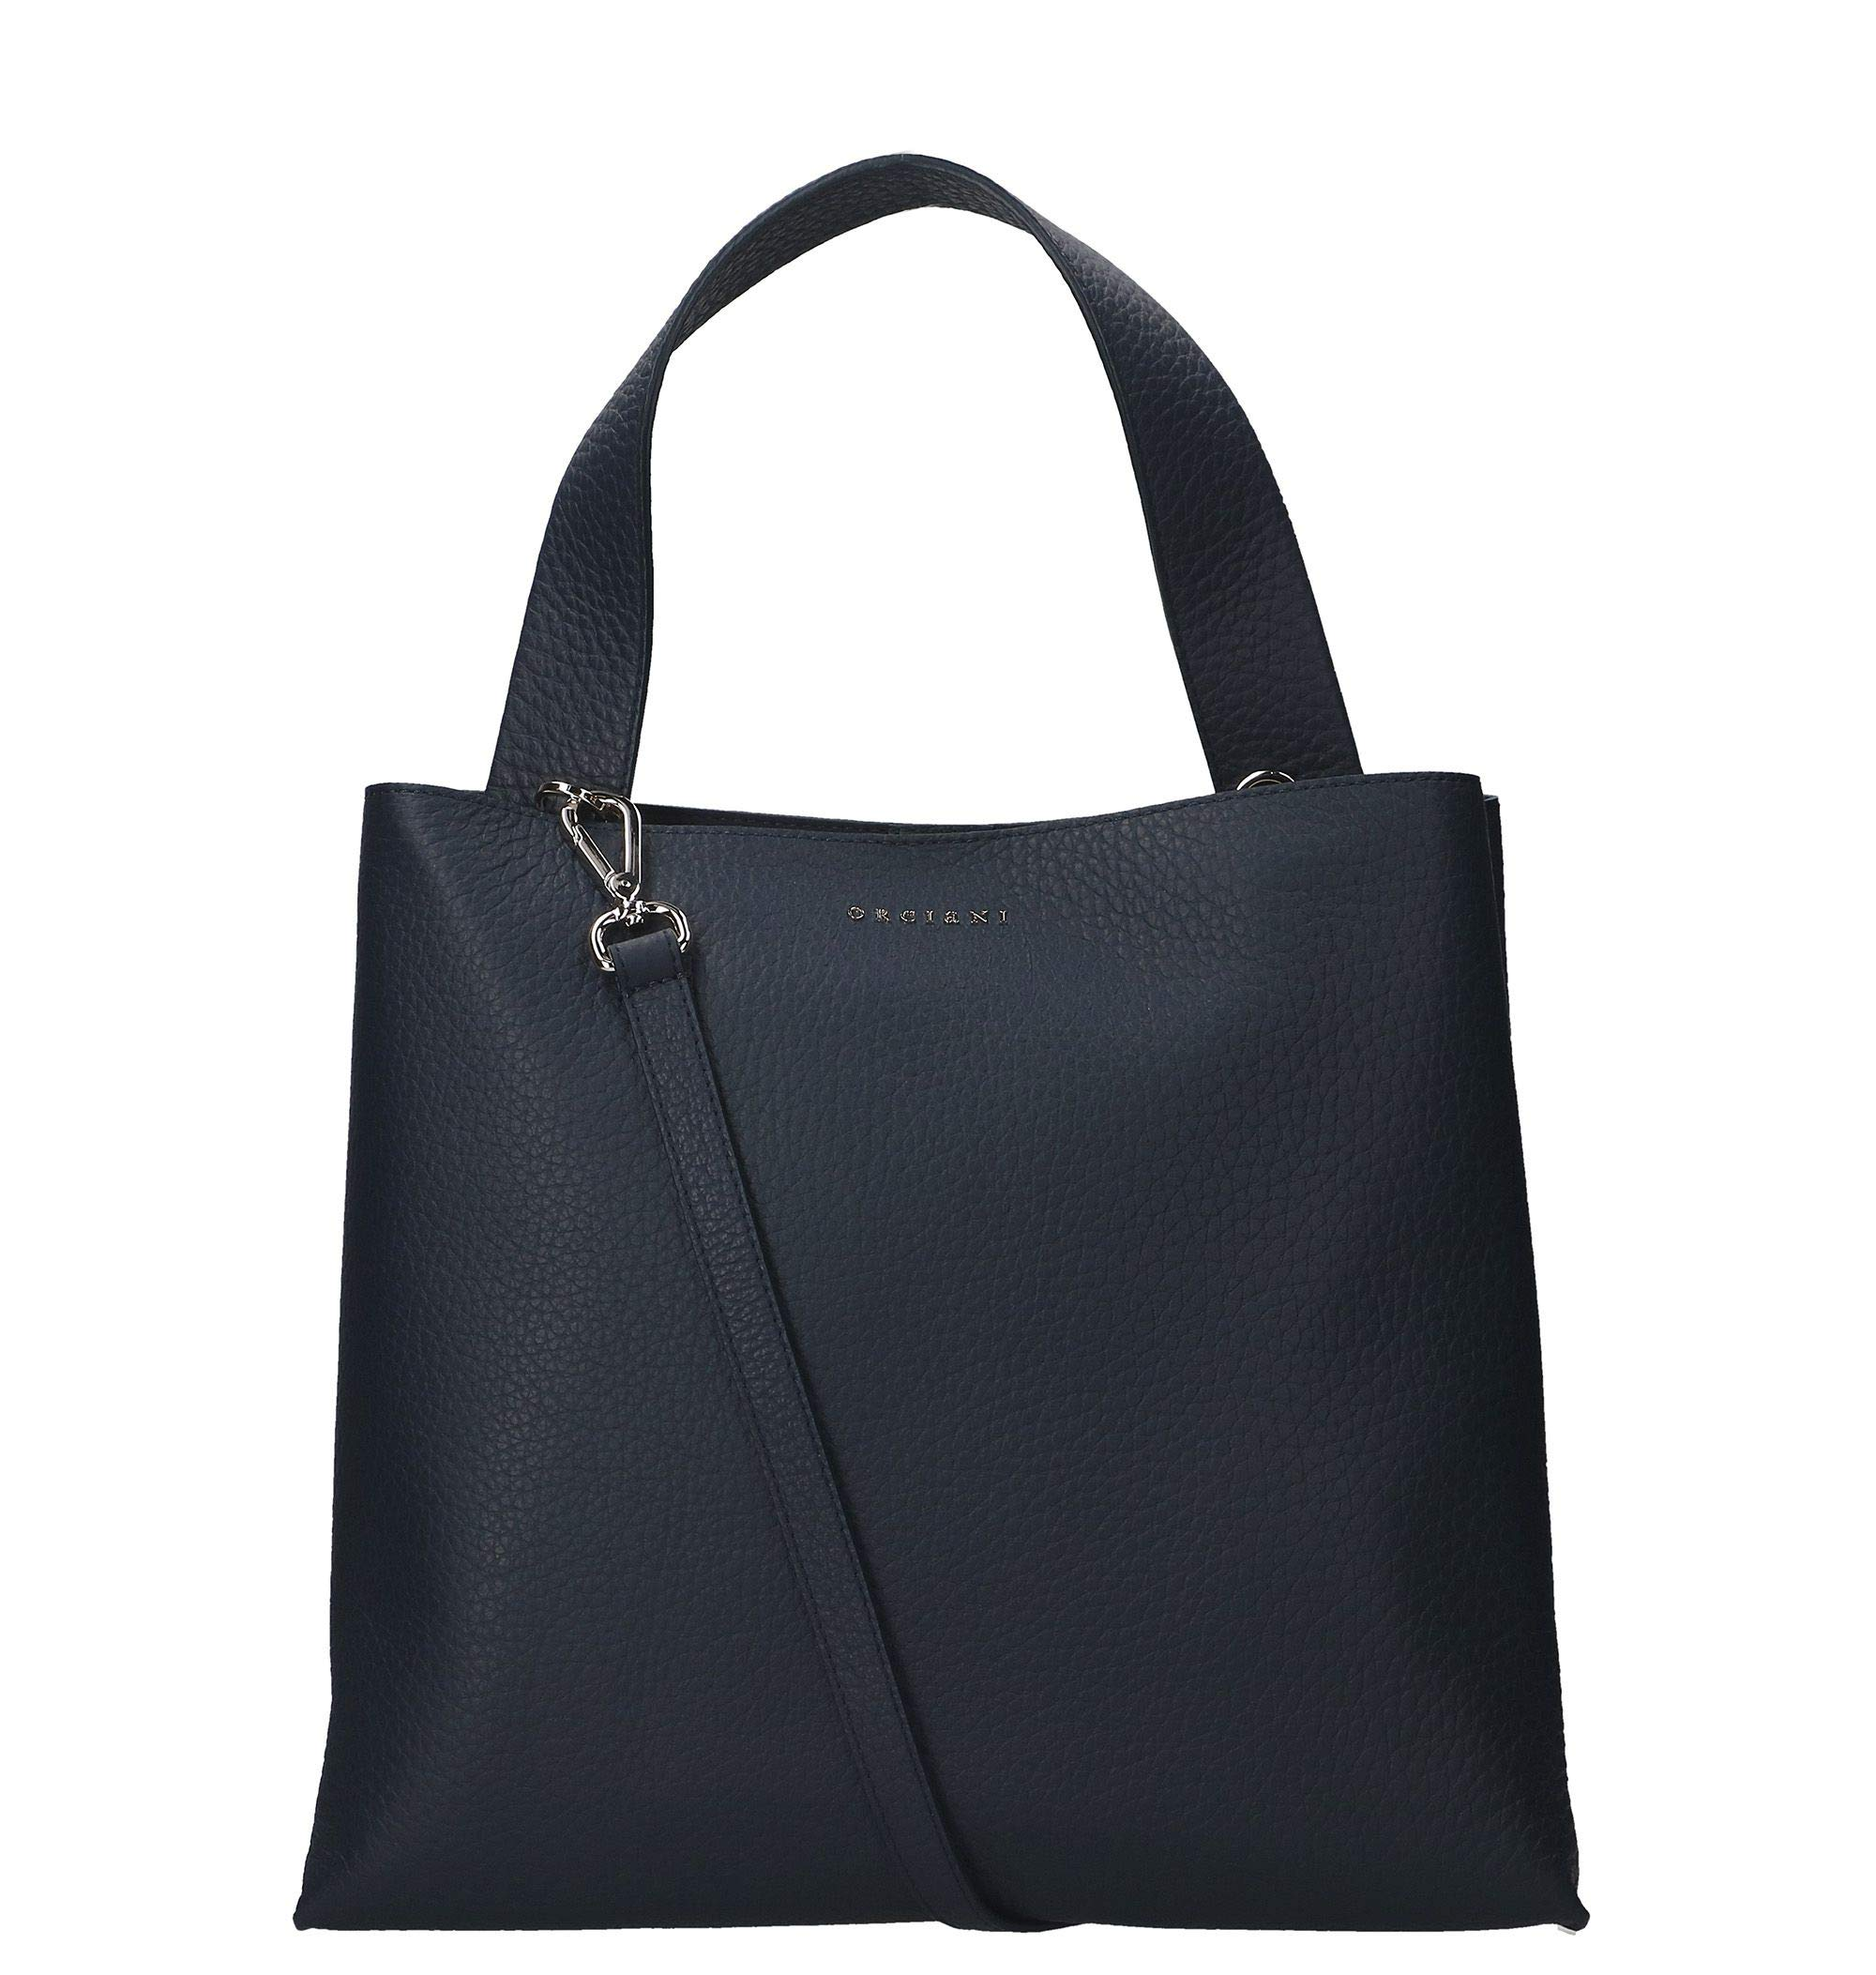 Orciani Women's B02031softnavy Blue Leather Tote